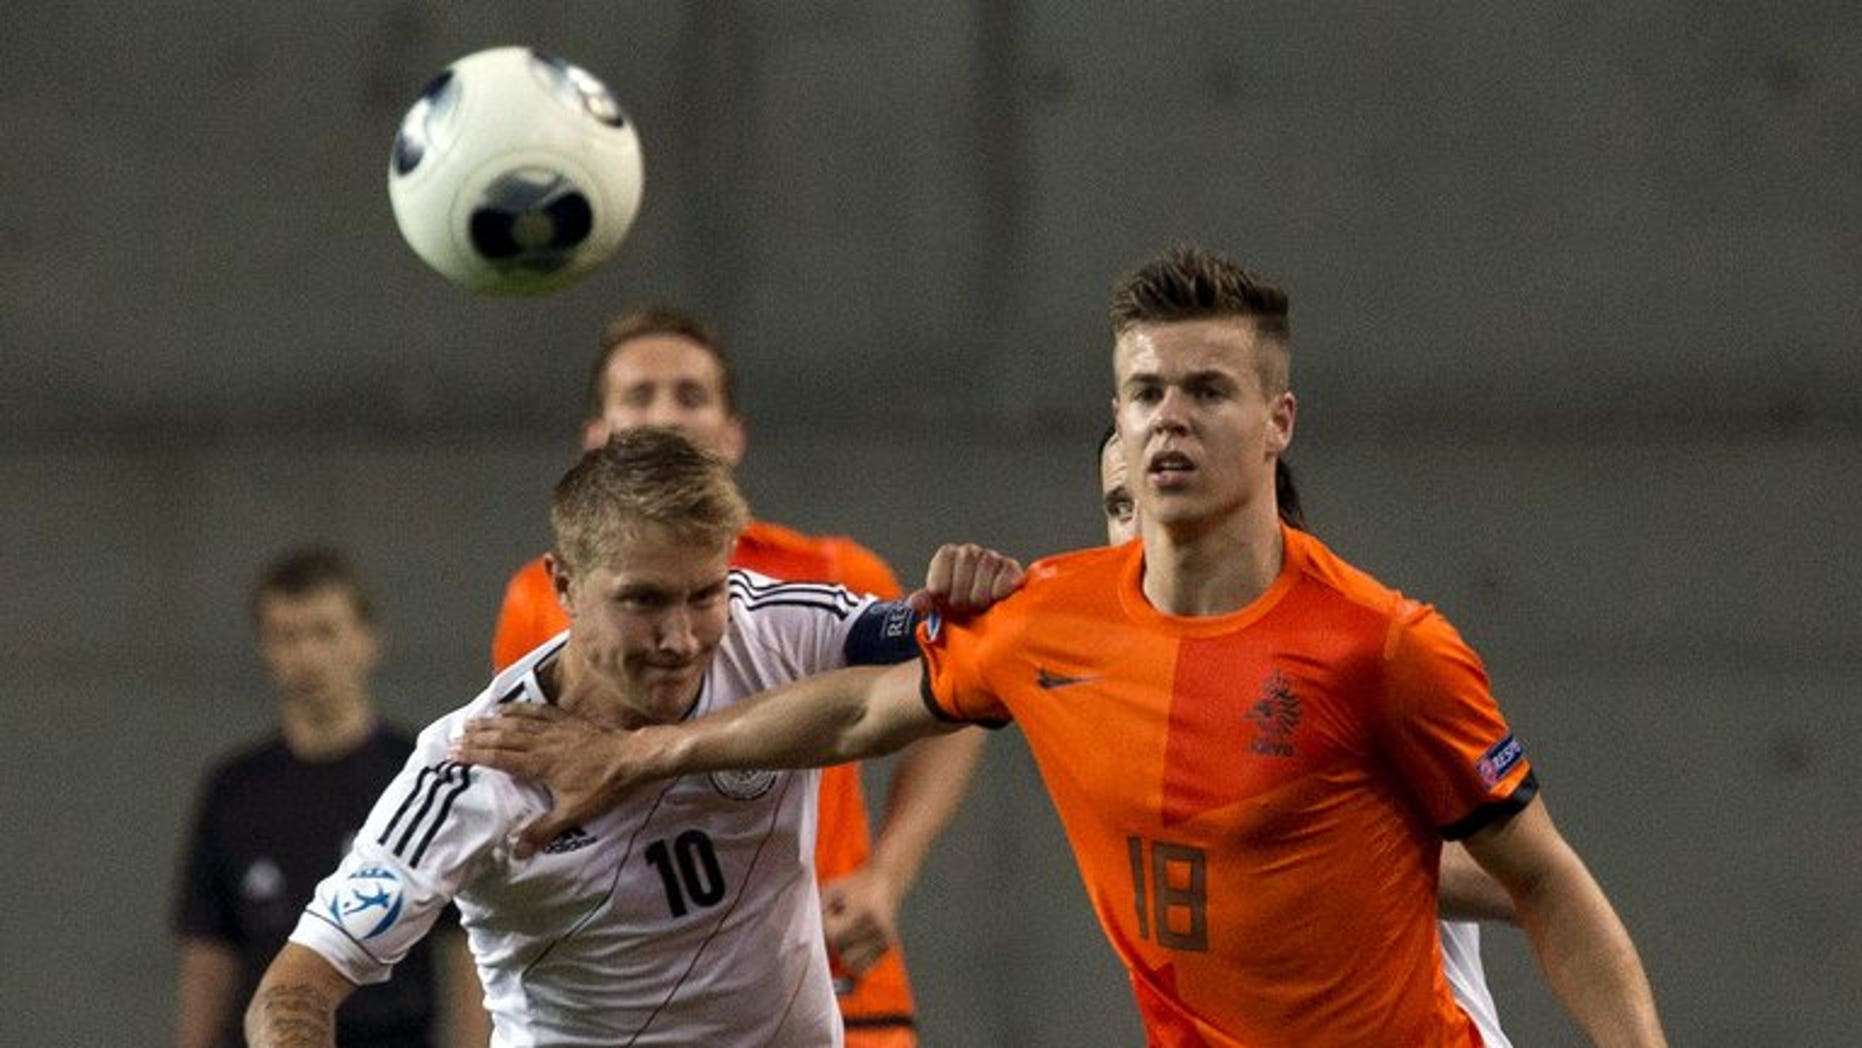 Germany's midfielder Lewis Holtby challenges Netherlands' midfielder Marco van Ginkel (right) during a 2013 UEFA U-21 Championship match at HaMoshava Stadium in Petah Tikva, north of Tel Aviv, on June 6, 2013. Chelsea have struck a deal to sign Van Ginkel from Vitesse Arnhem.